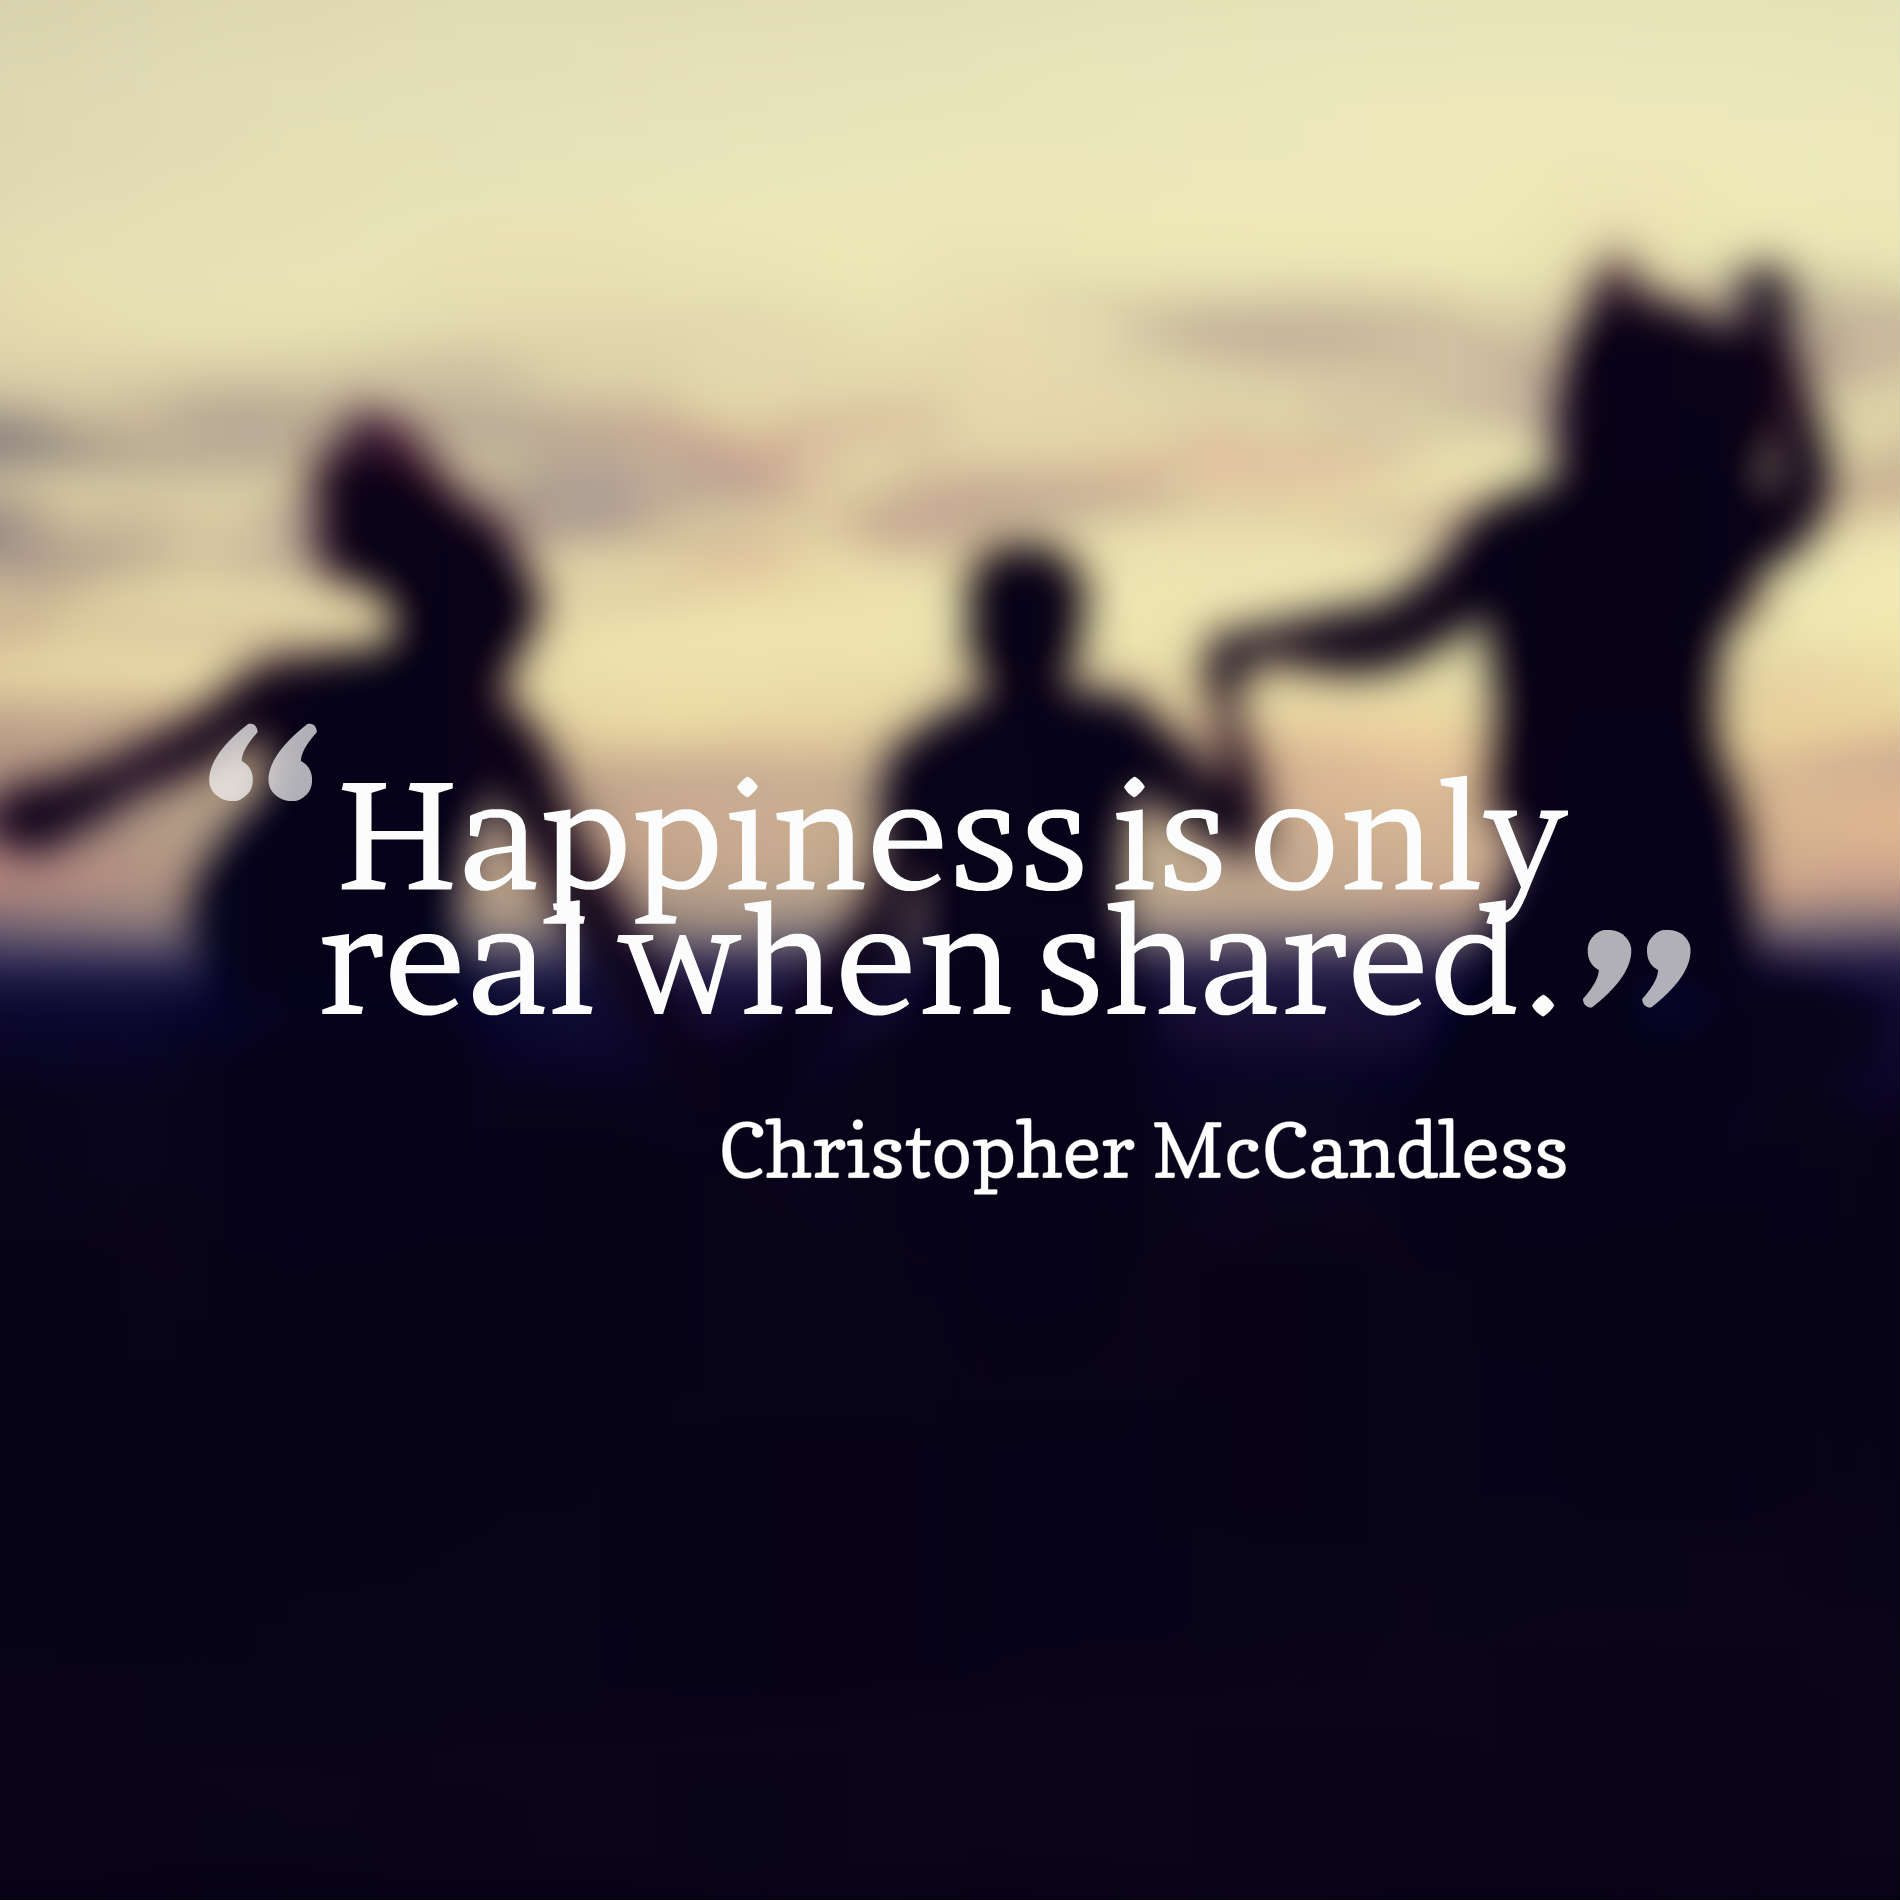 Happiness Only Real When Shared Quote Daily Inspiration Quotes